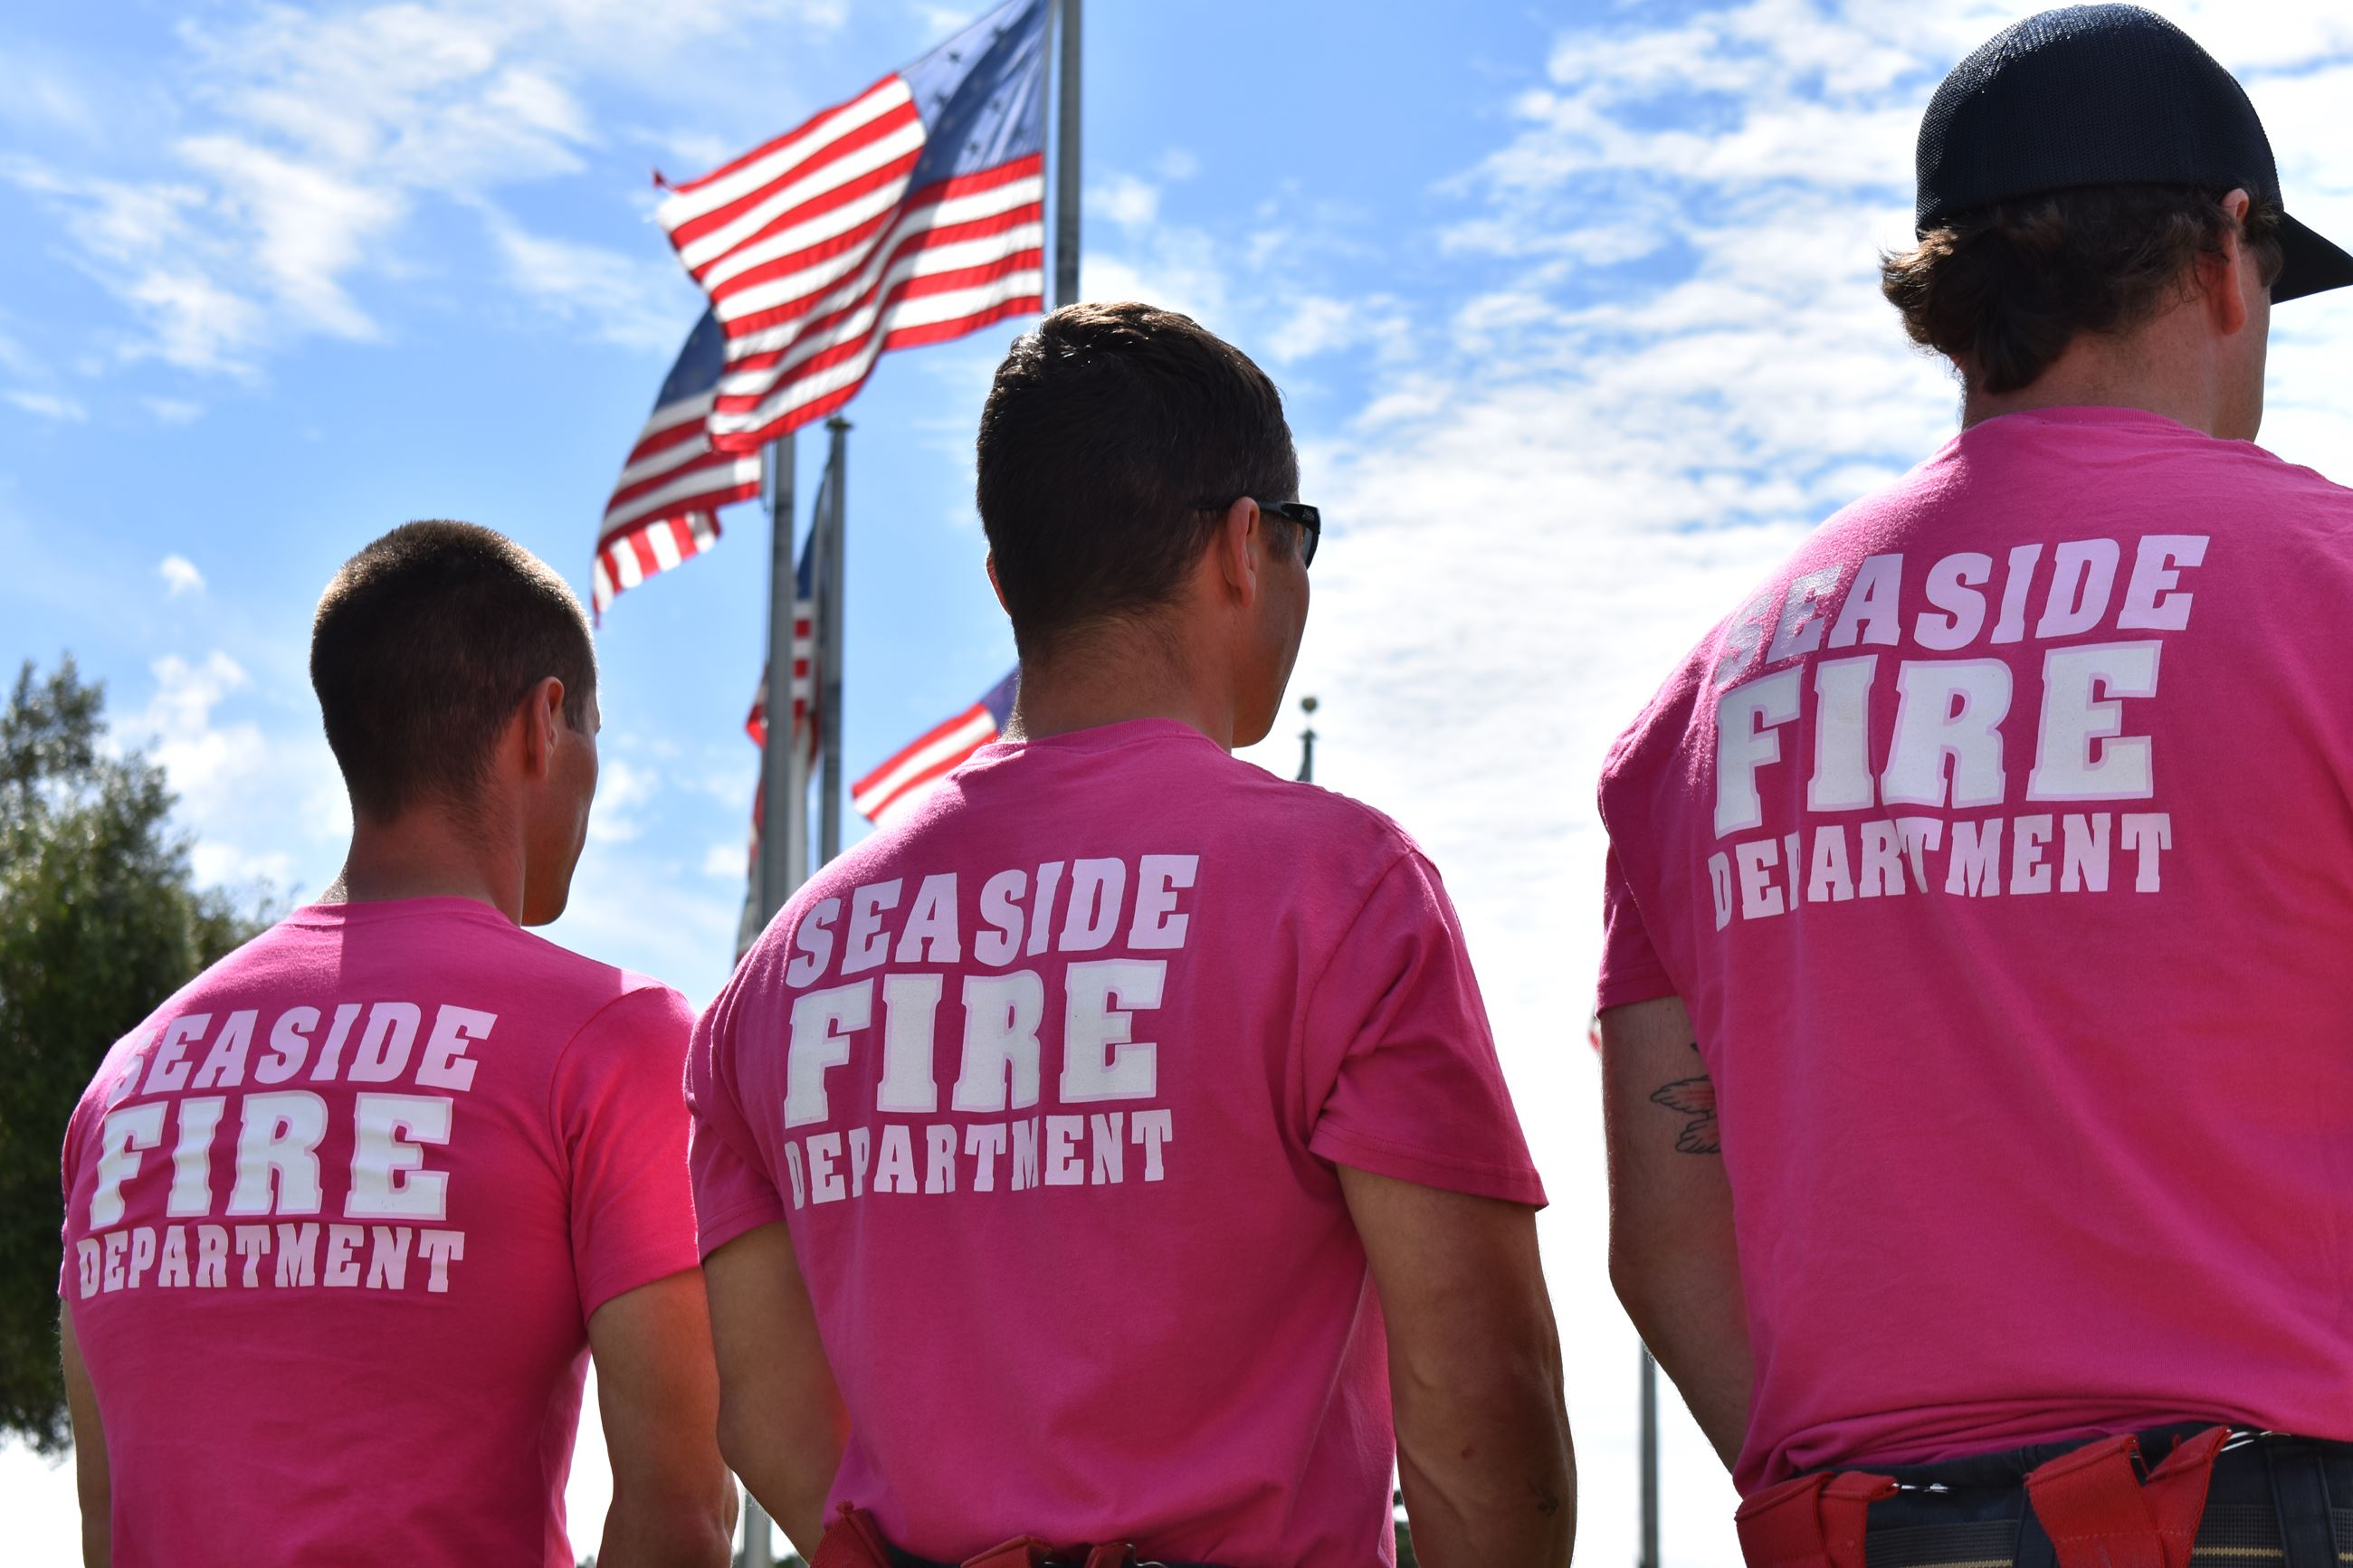 Fire Department Staff wearing pink shirts